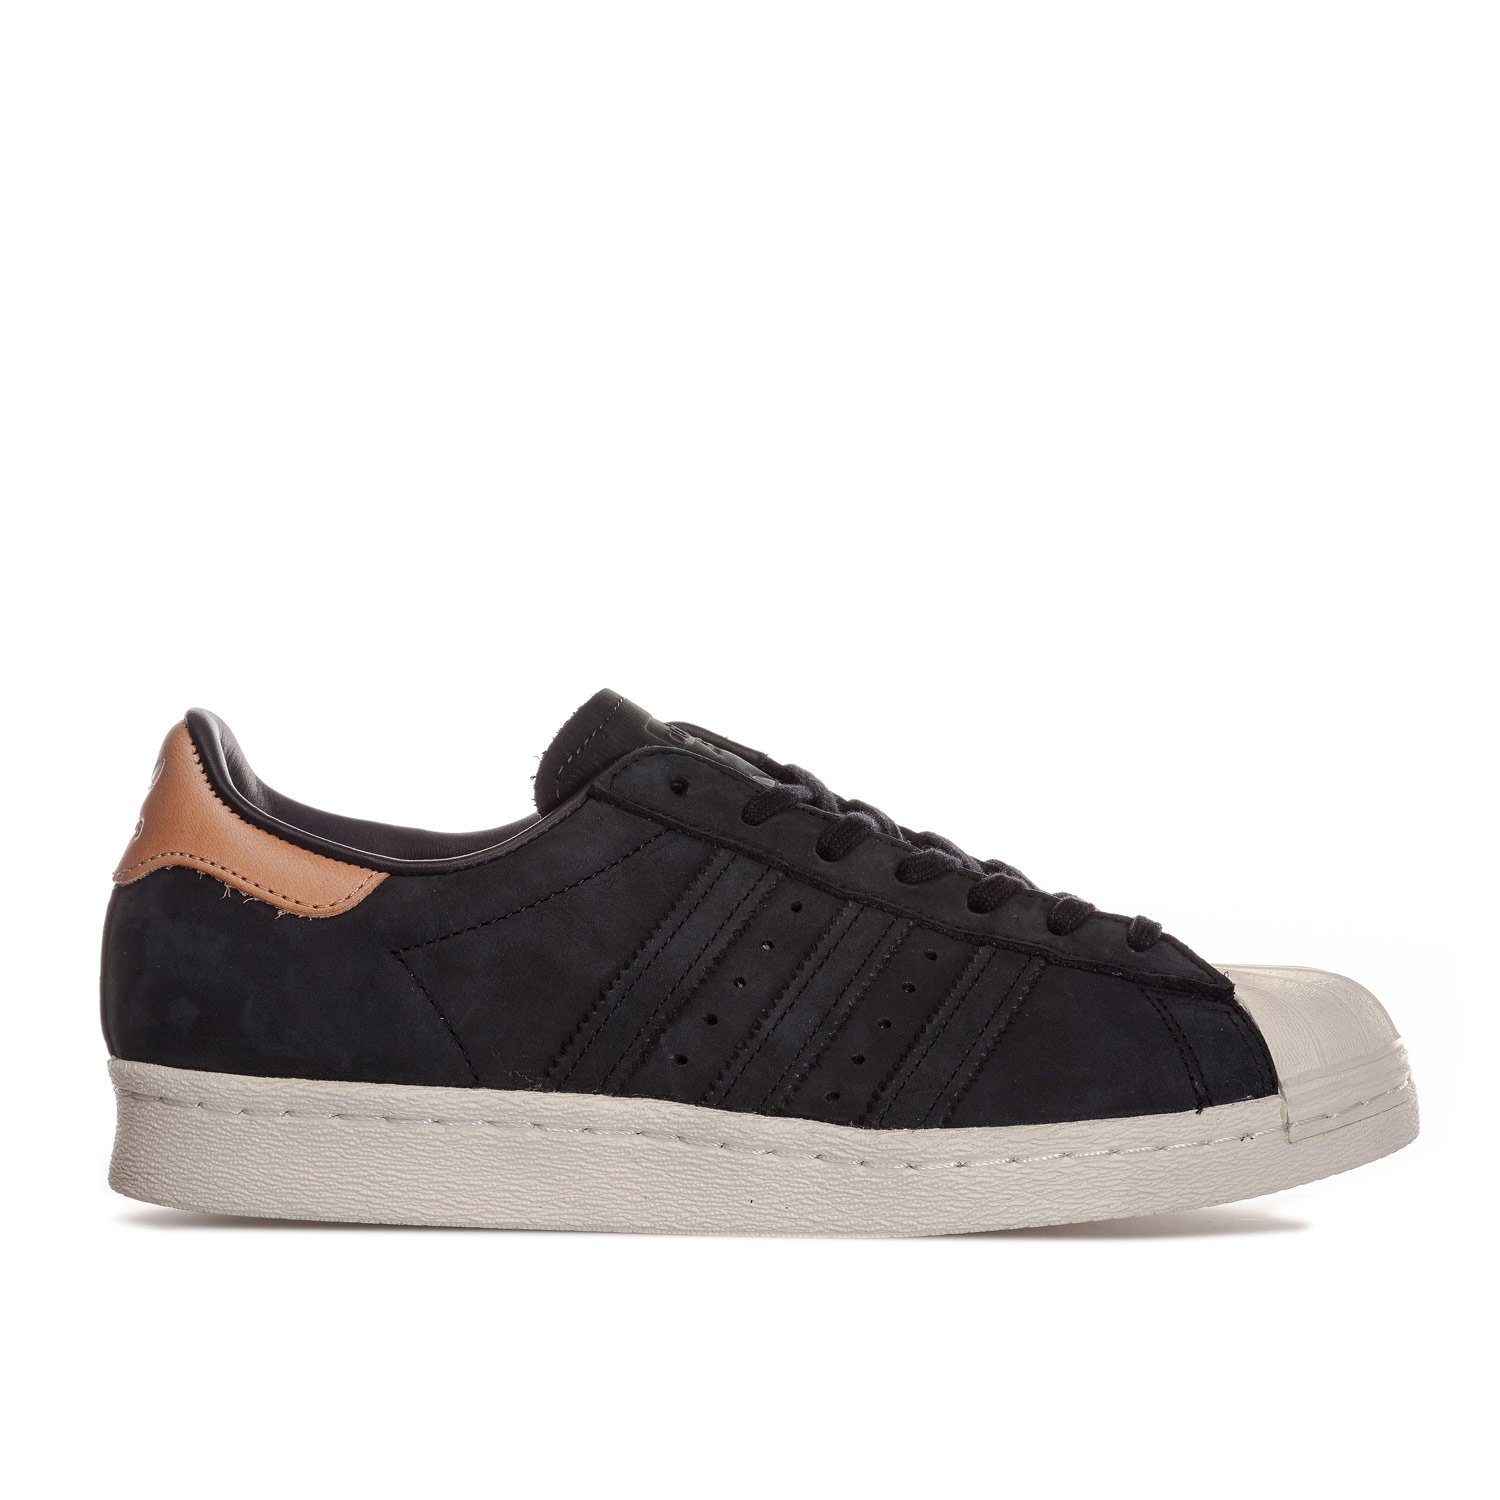 adidas Originals Women's ' Superstar 80S Trainers US10 Black